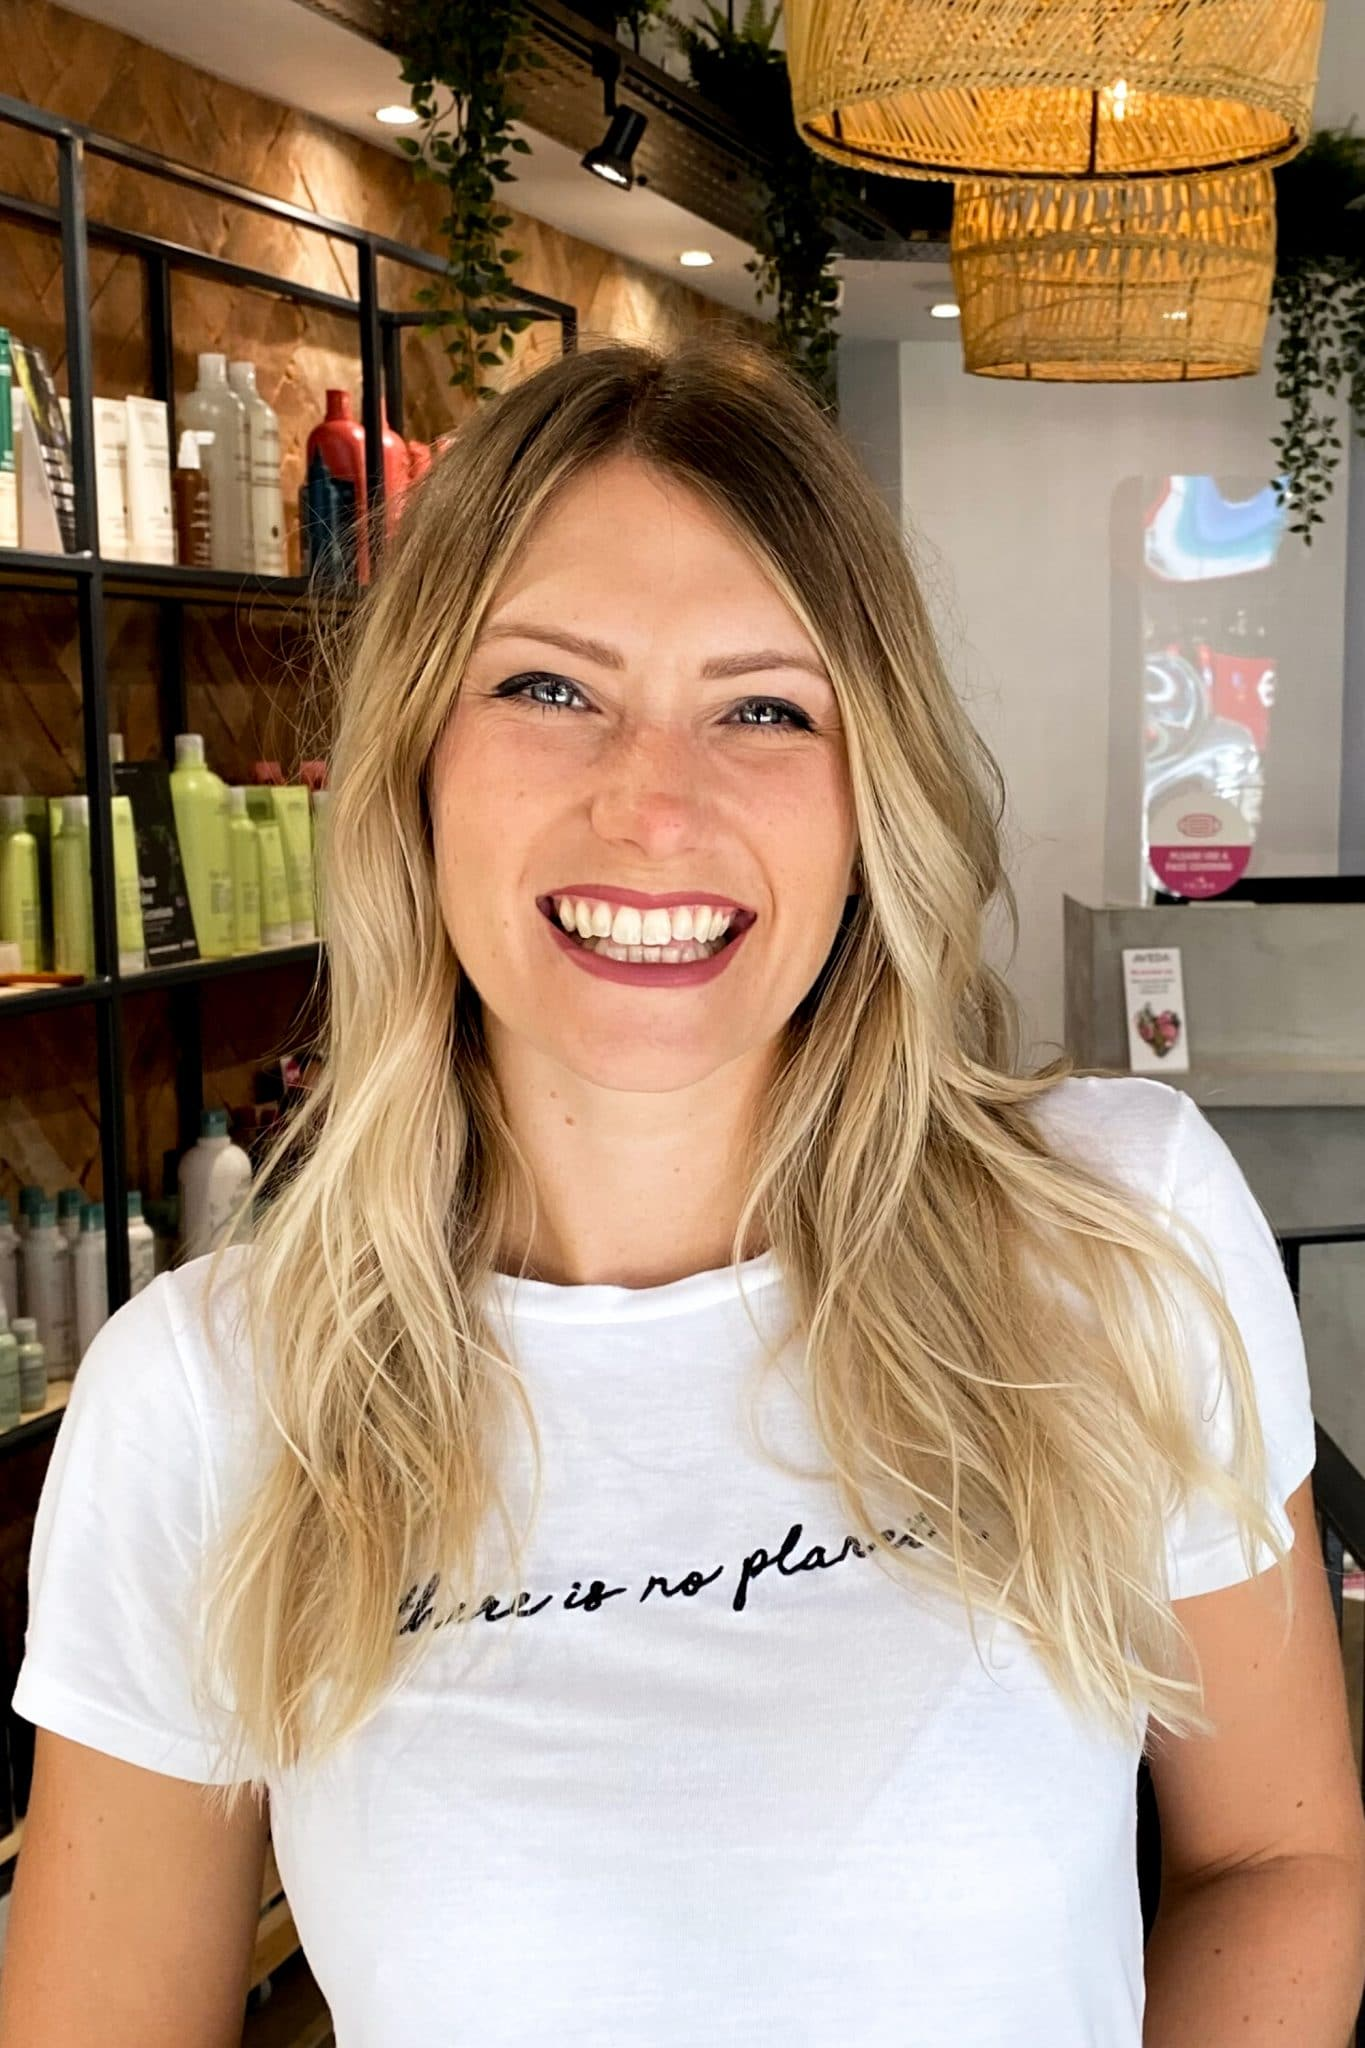 Anneliese - Balayage Specialist - Tribe Clapham